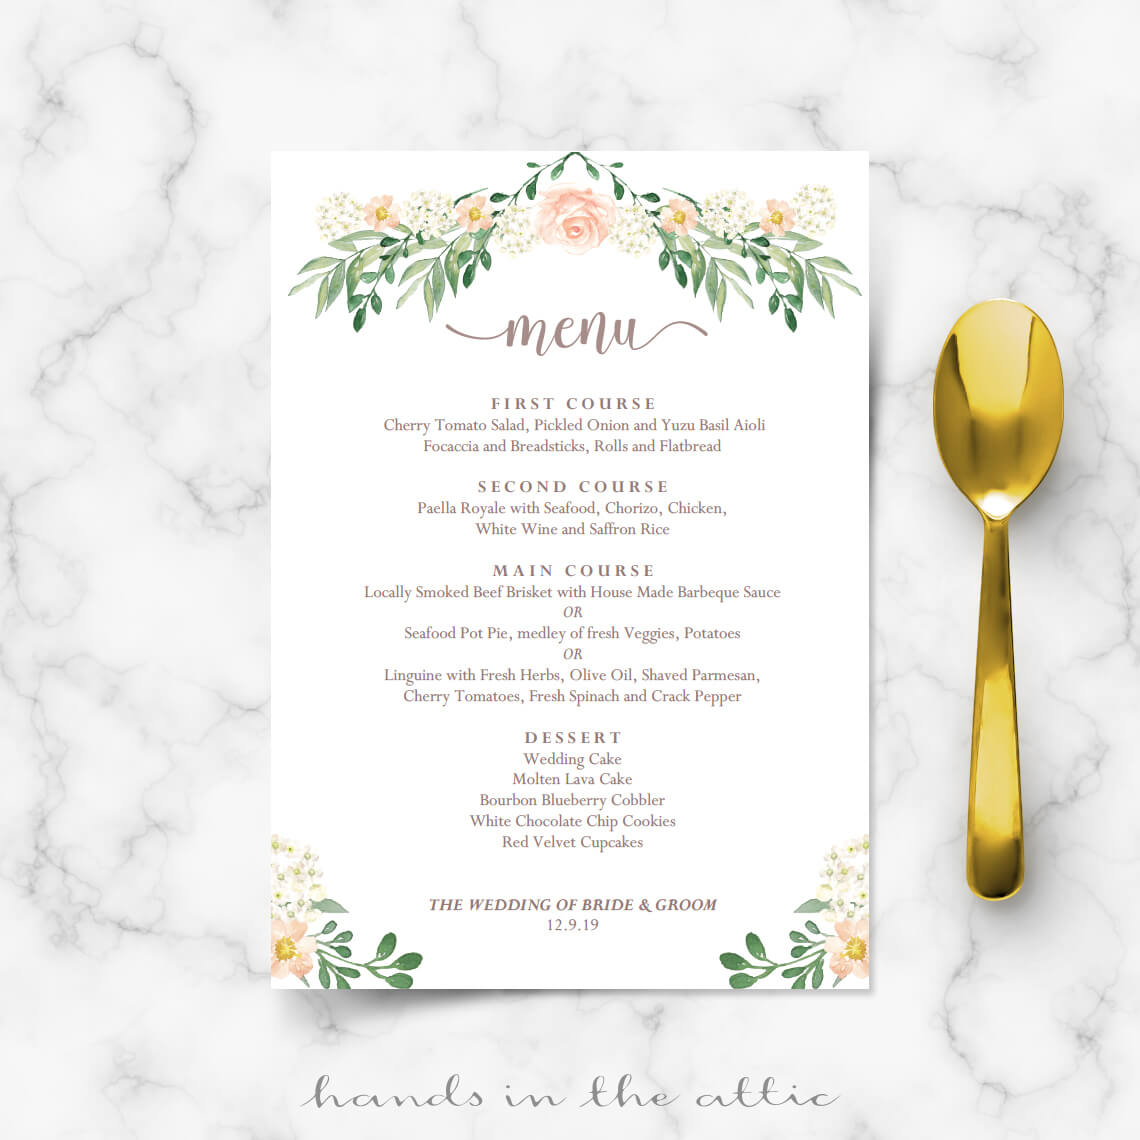 Wedding Dinner Menu Printable Templates Hands In The Attic